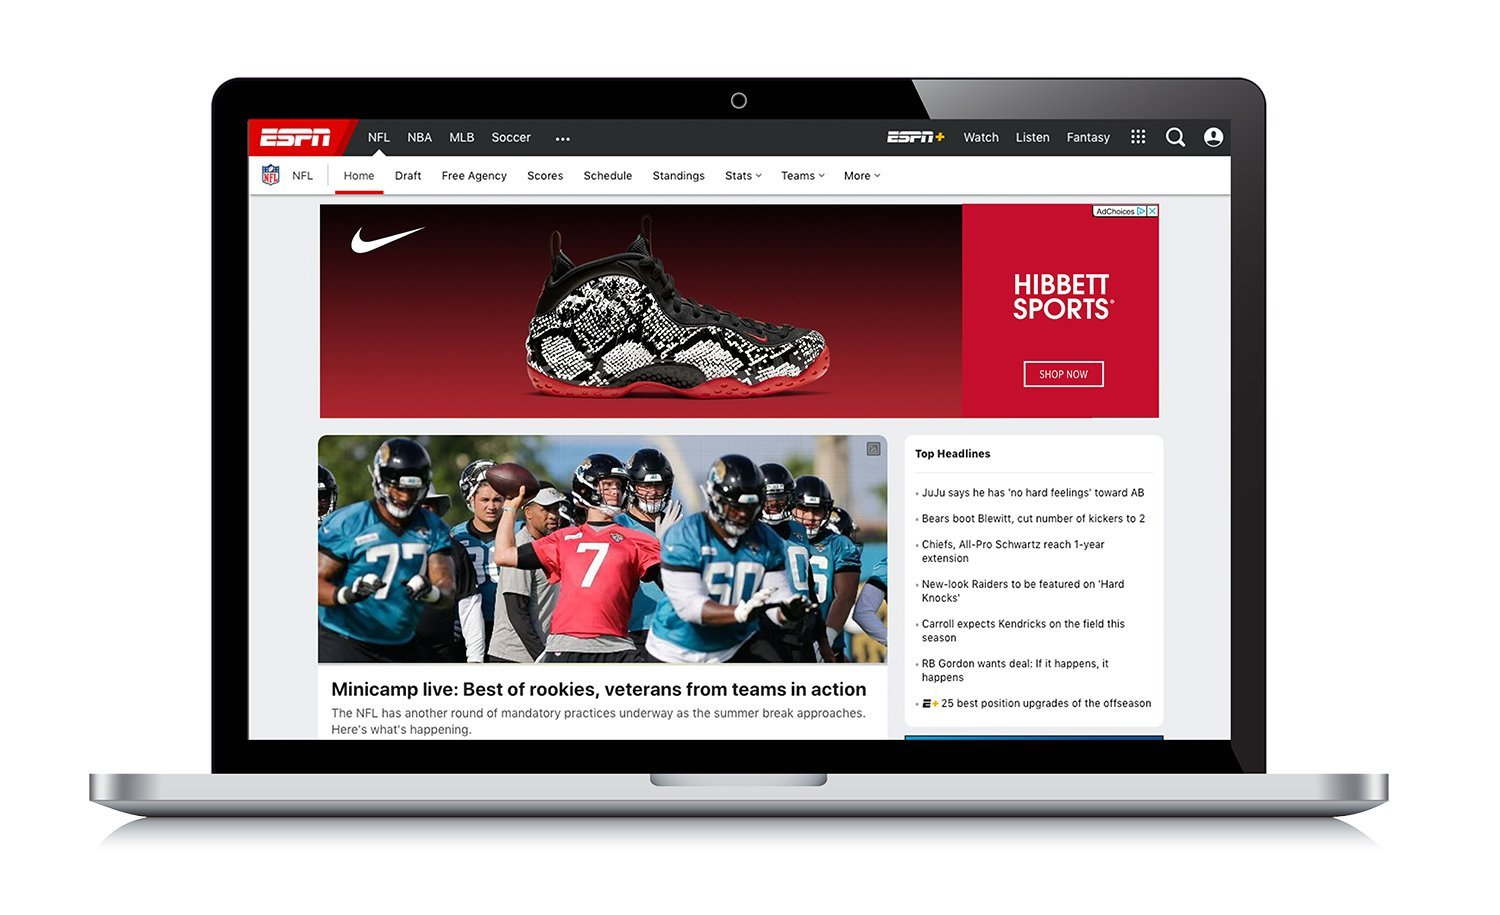 Example of Hibbett Sports Banner Ad